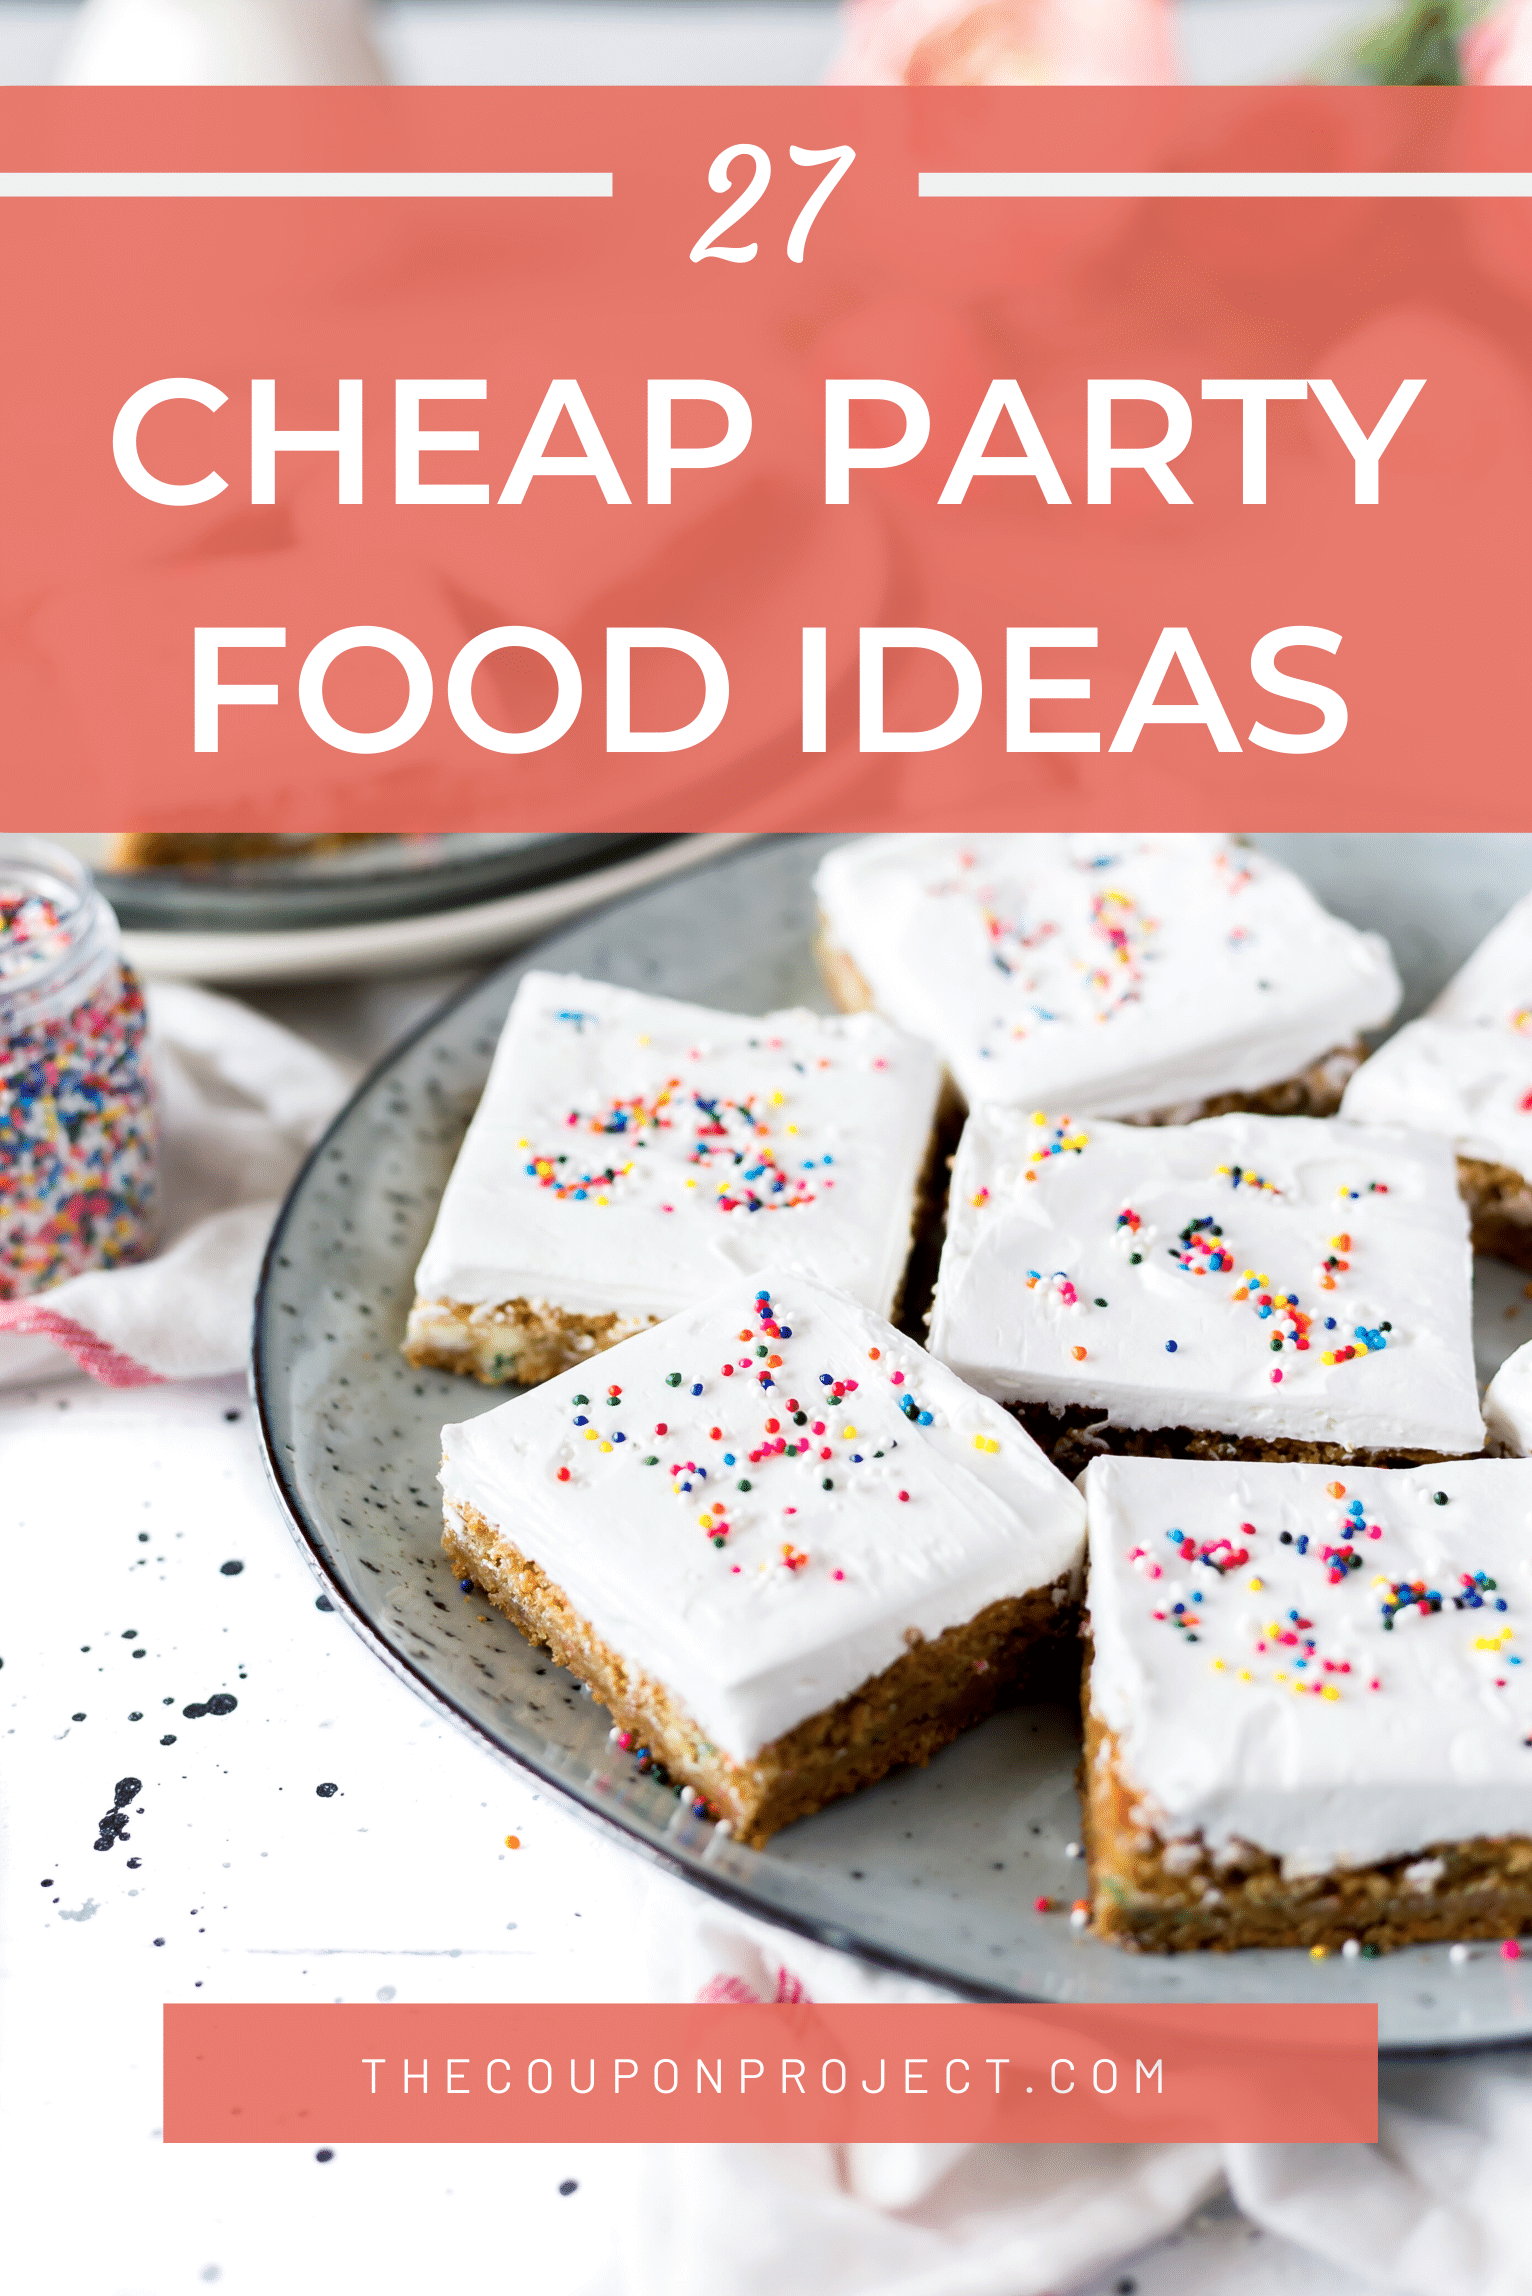 27 Cheap Party Food Ideas Delicious Options In 2020 In 2020